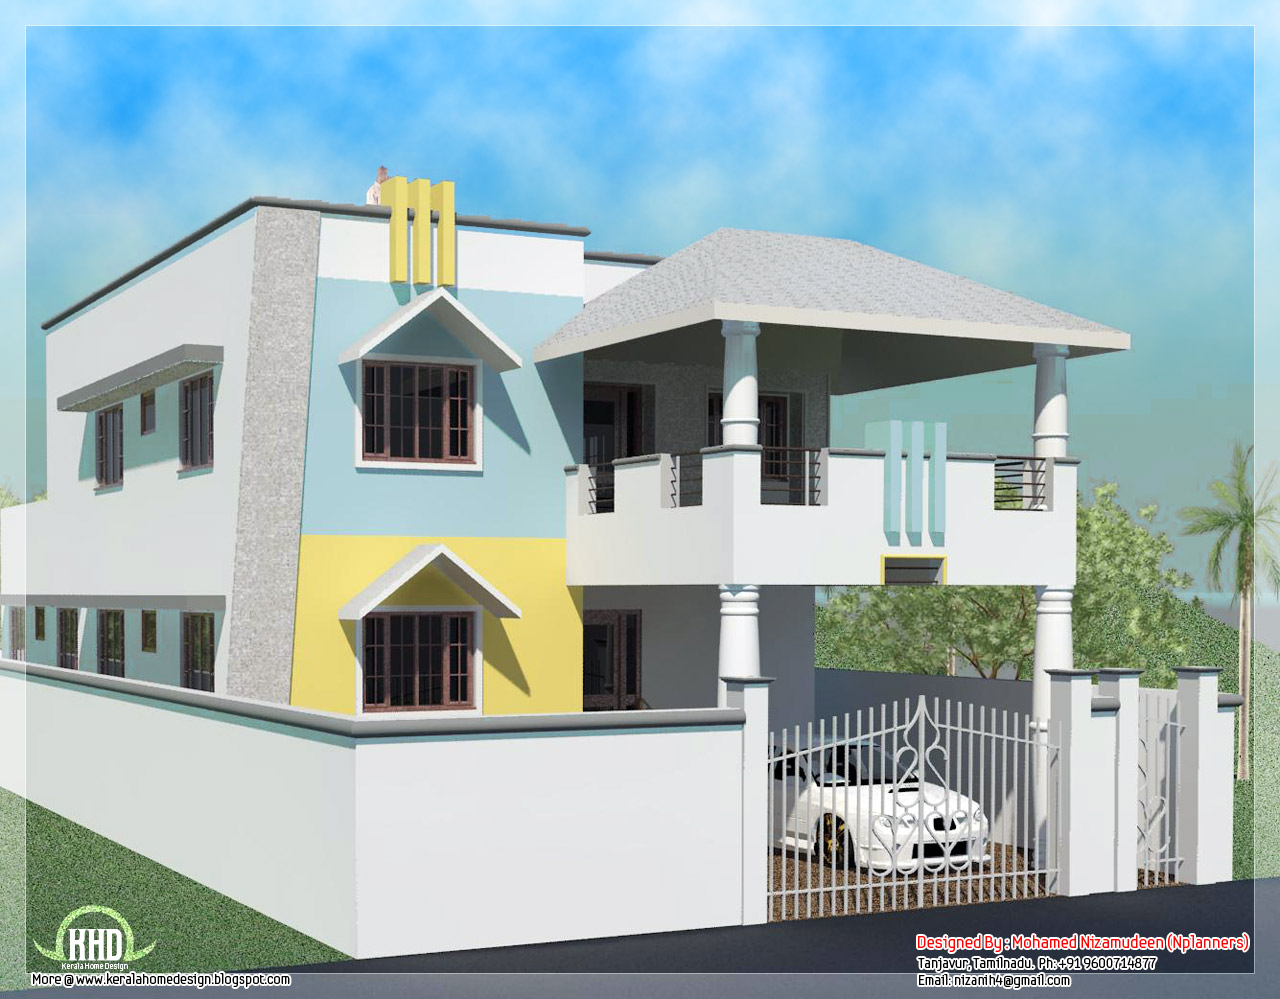 House plans and design modern house plans in tamilnadu for Tamilnadu home design photos